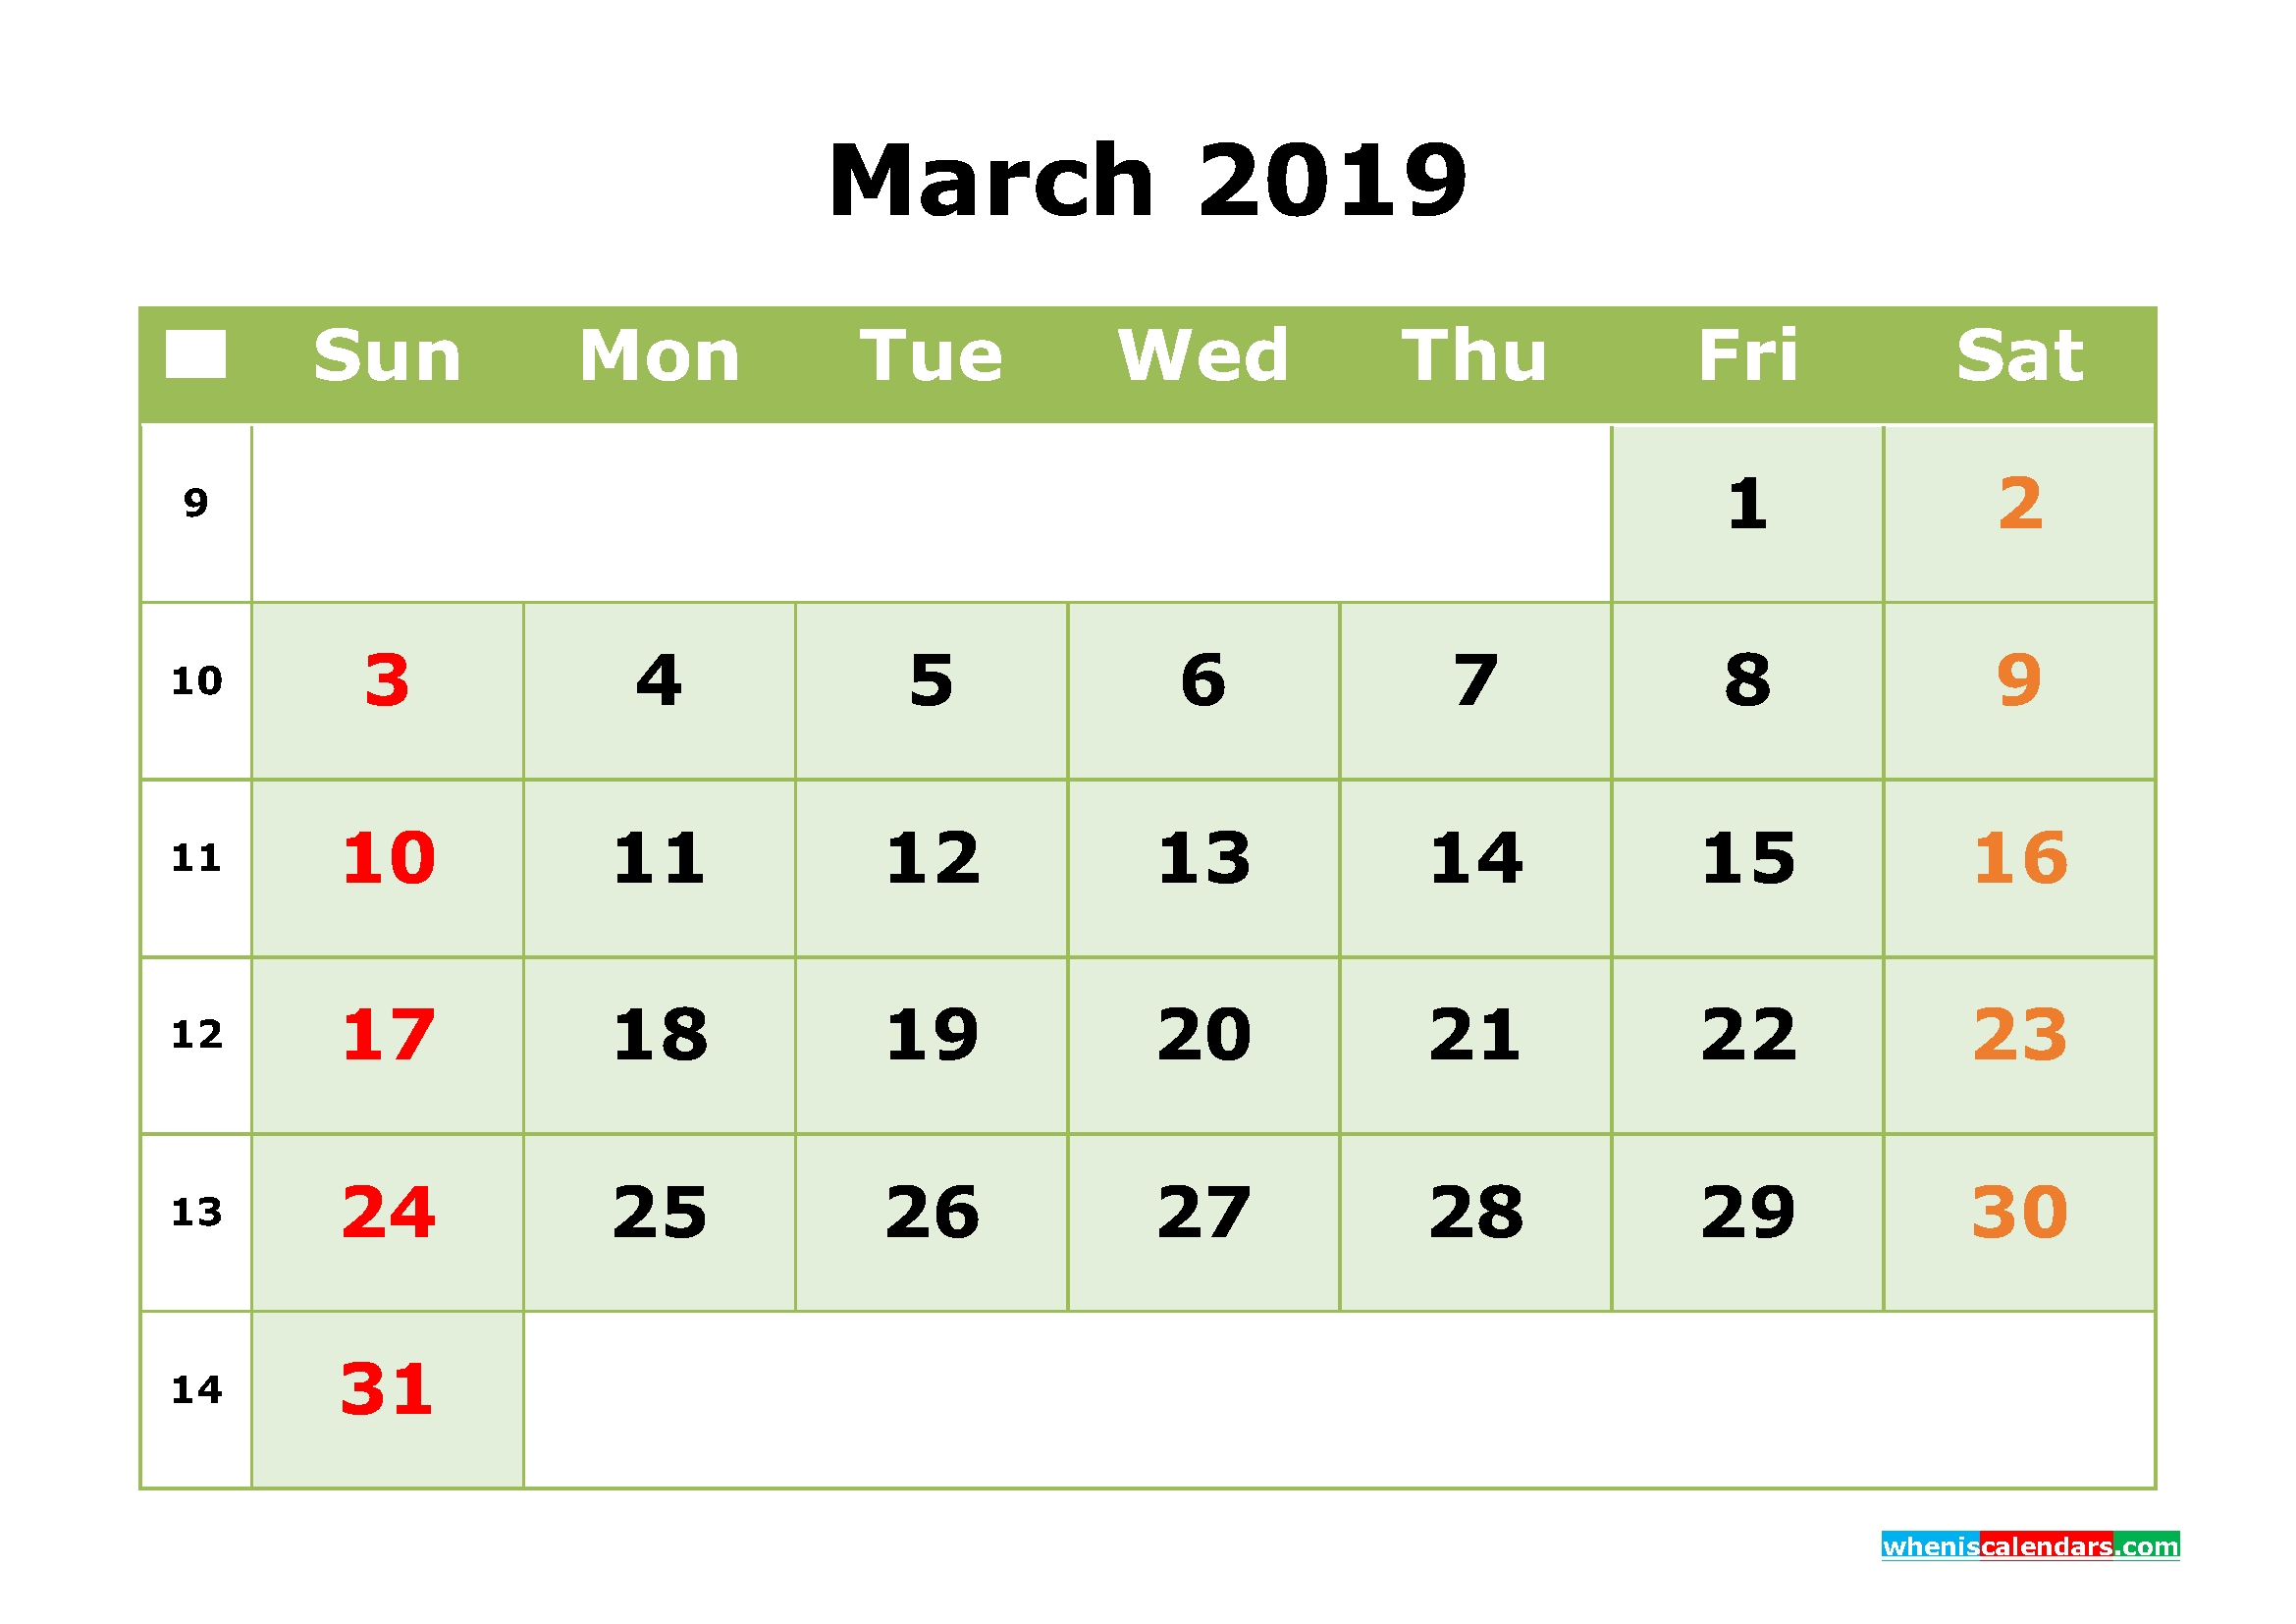 March 2019 Printable Calendar Monthmonth Calendar Template Calendar 3/2019